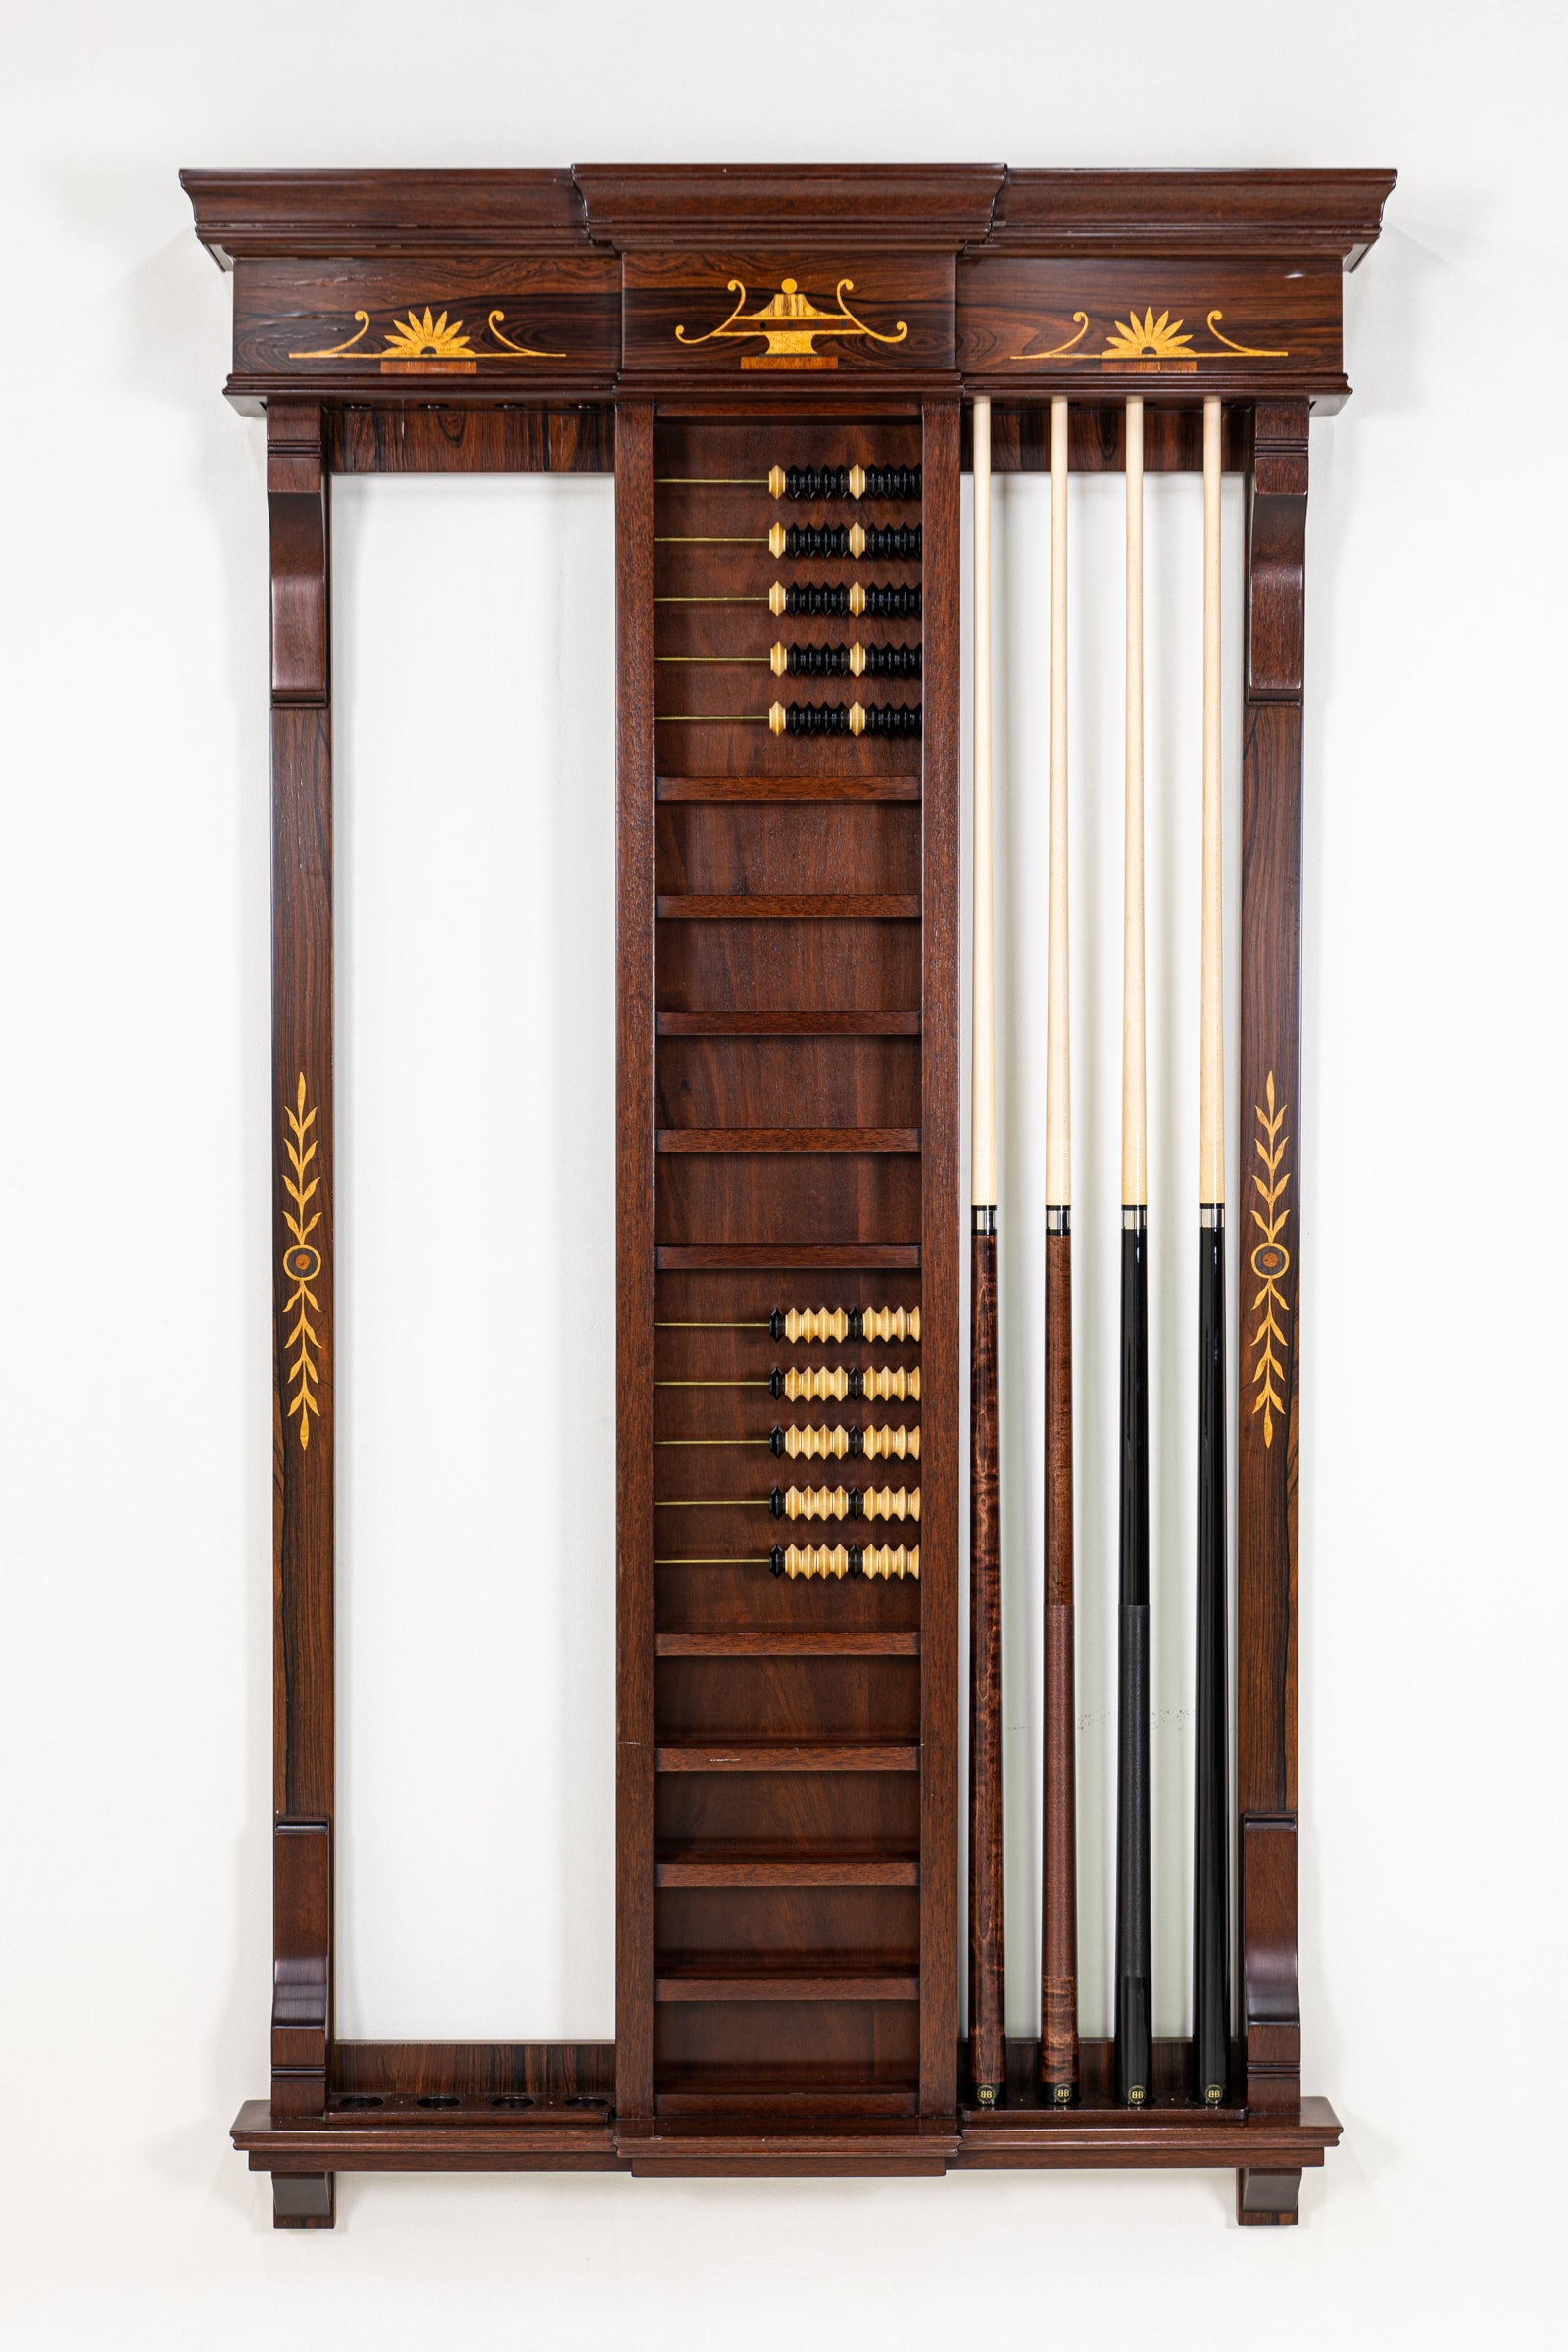 Custom Combination Wall Rack (Variable Designs) - Blatt Billiards